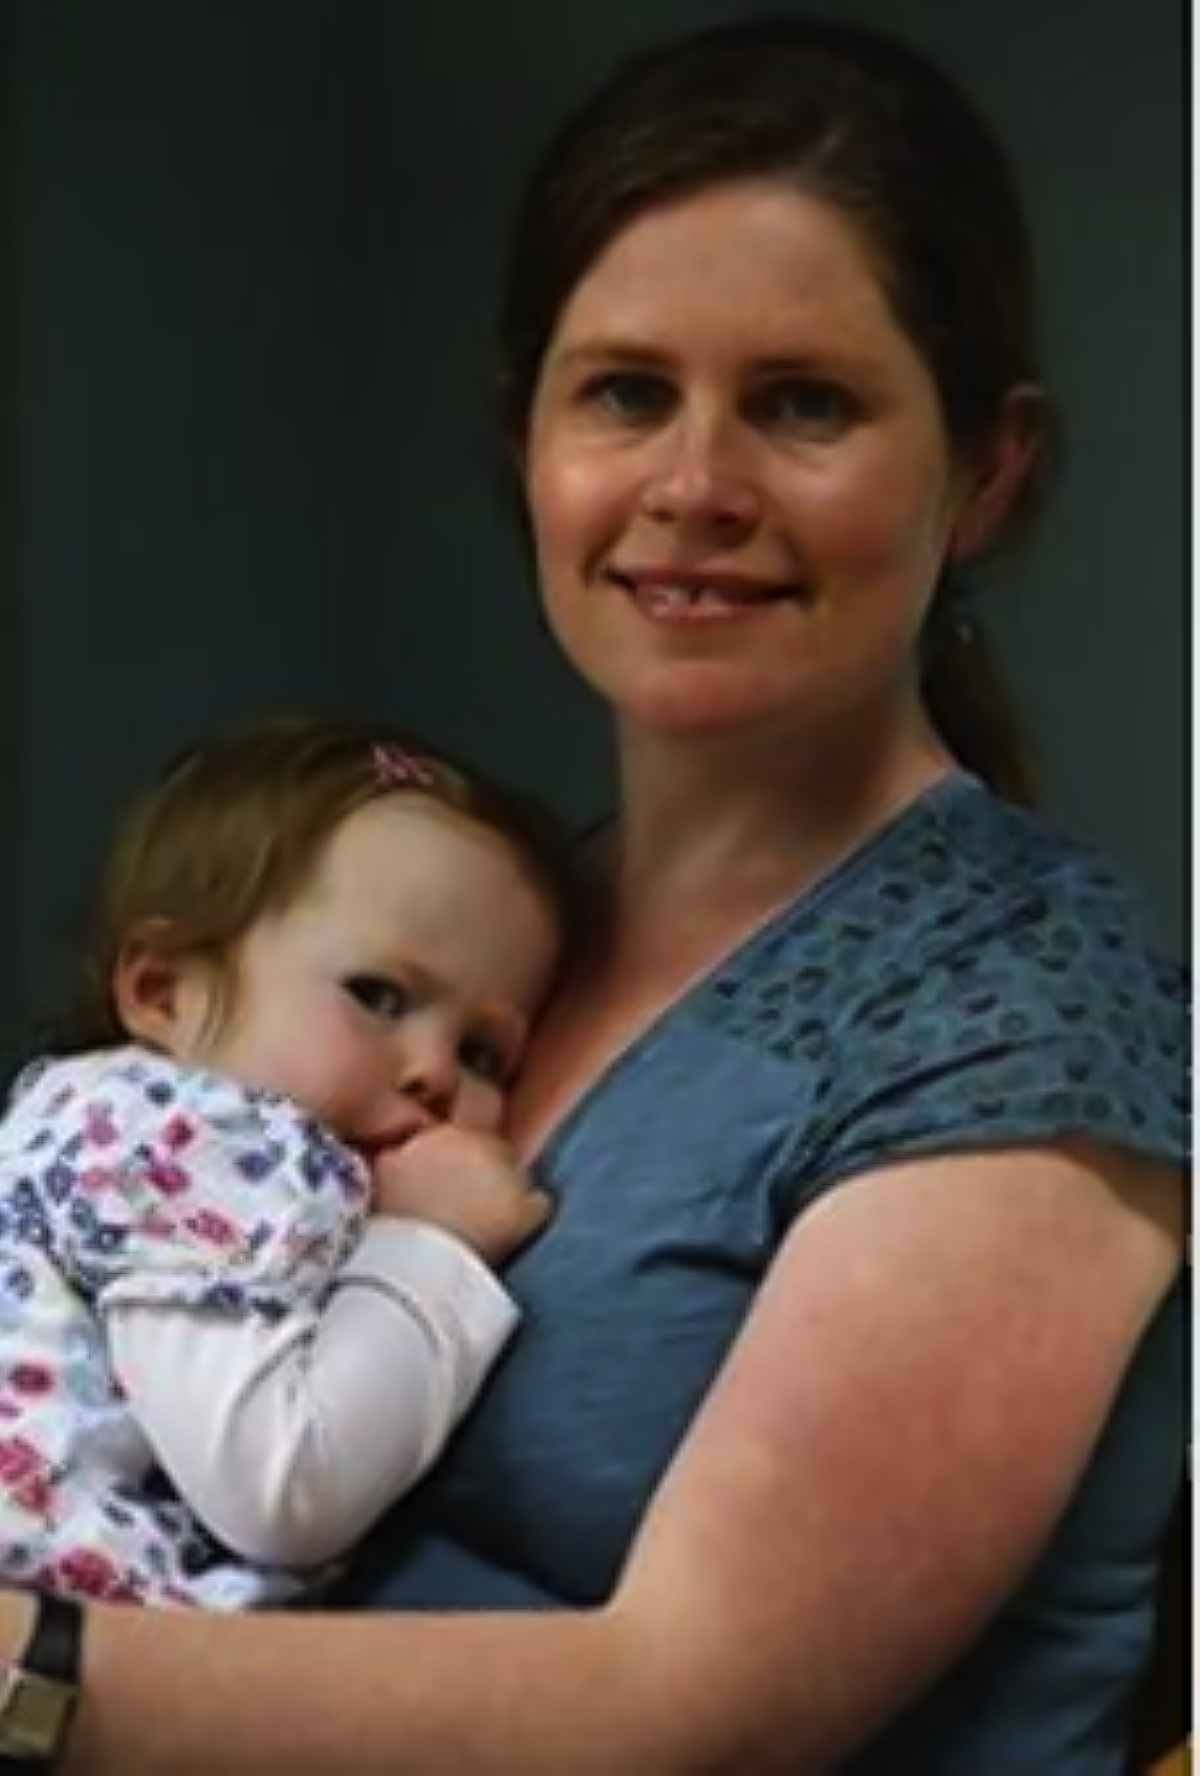 St Albans mum raises awareness of pregnancy condition